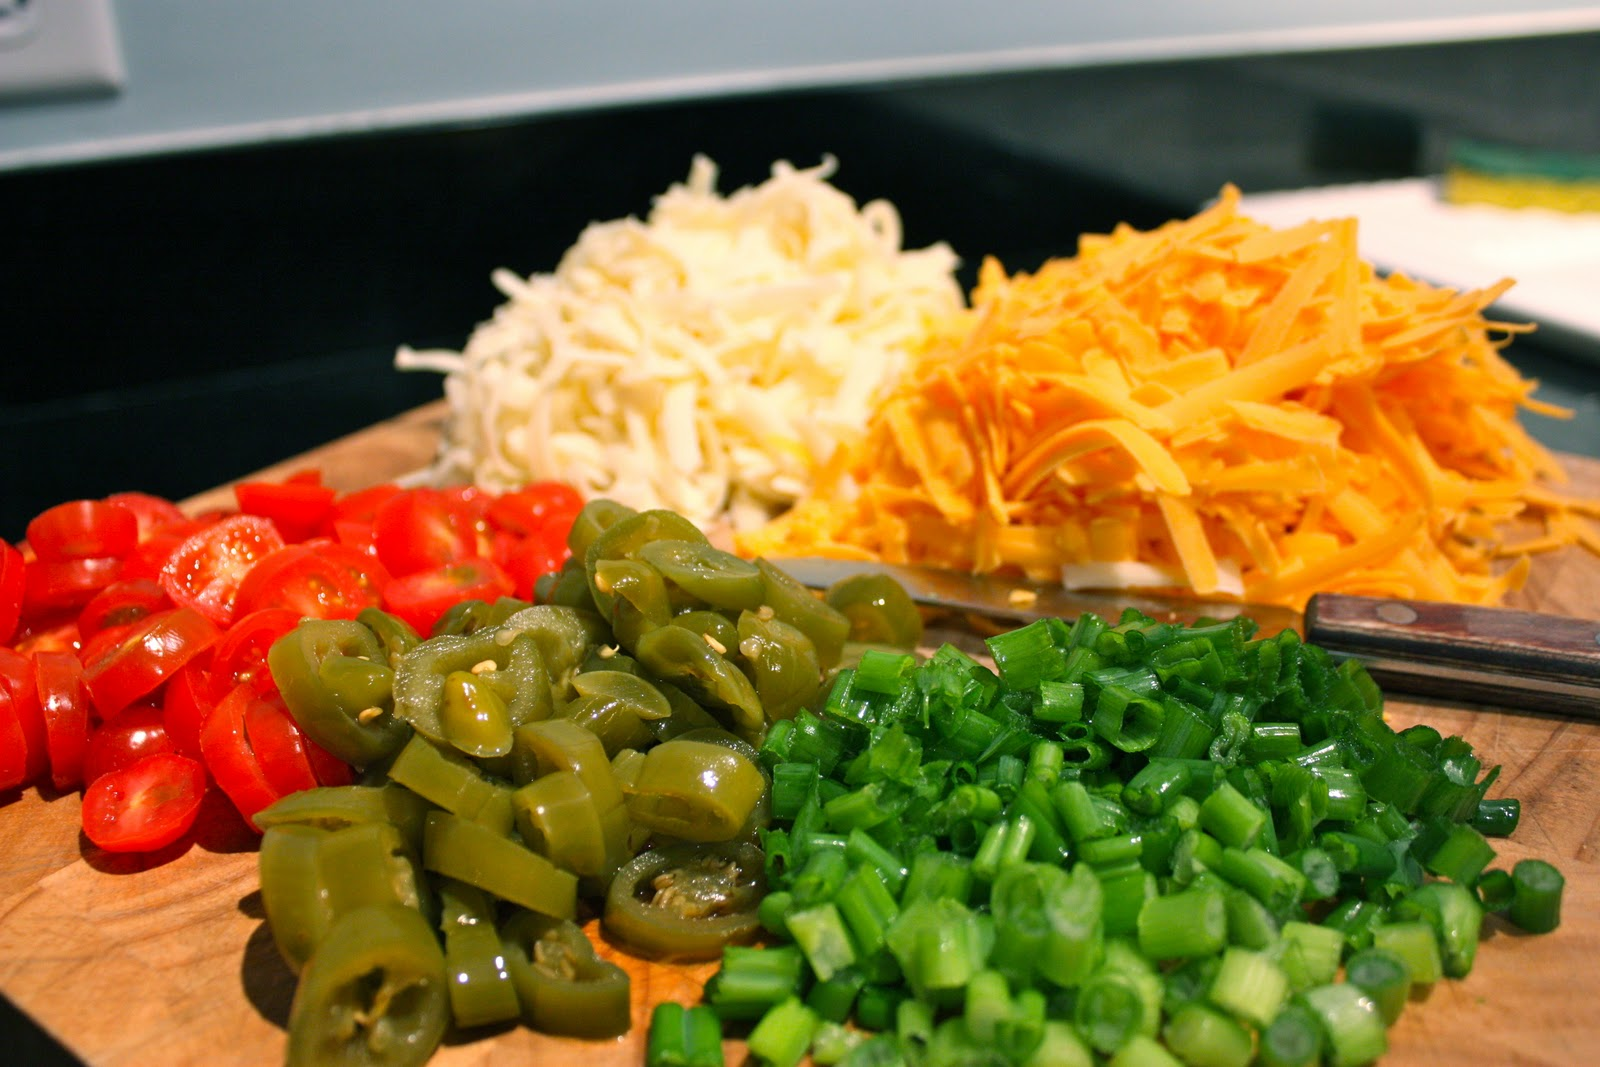 Cheese and different vegetables on chopping board.